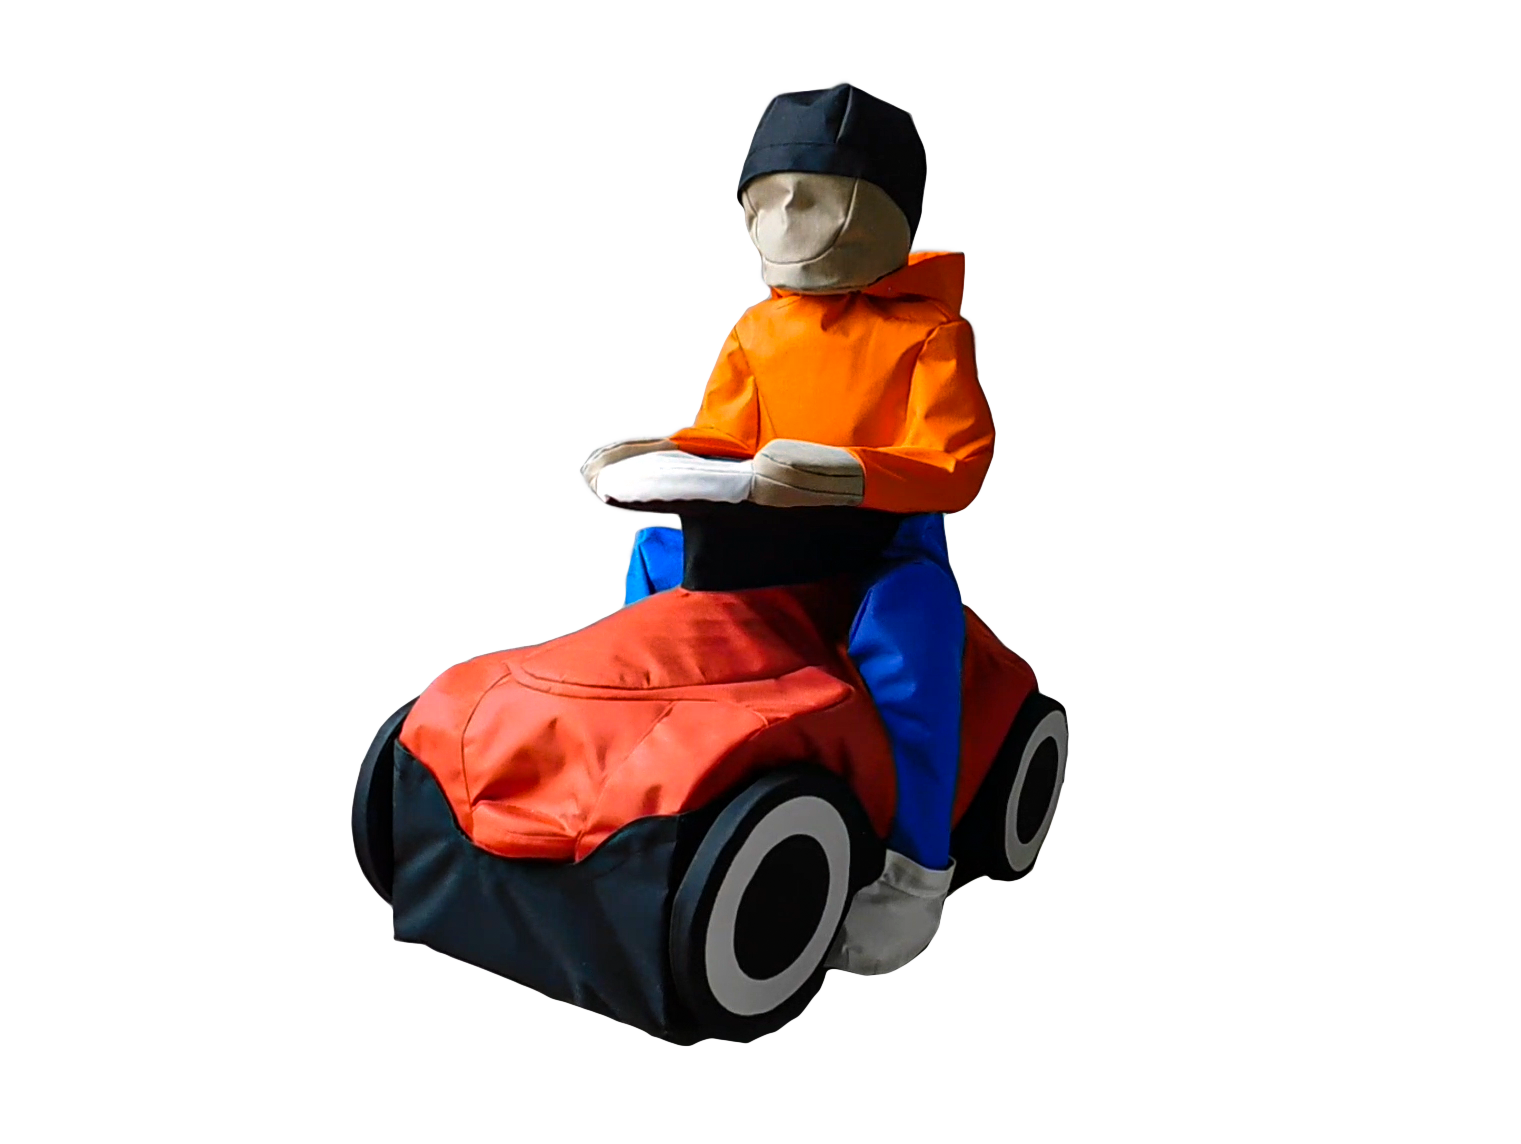 Child dummy for Autonomous Emergency Braking Tests 1